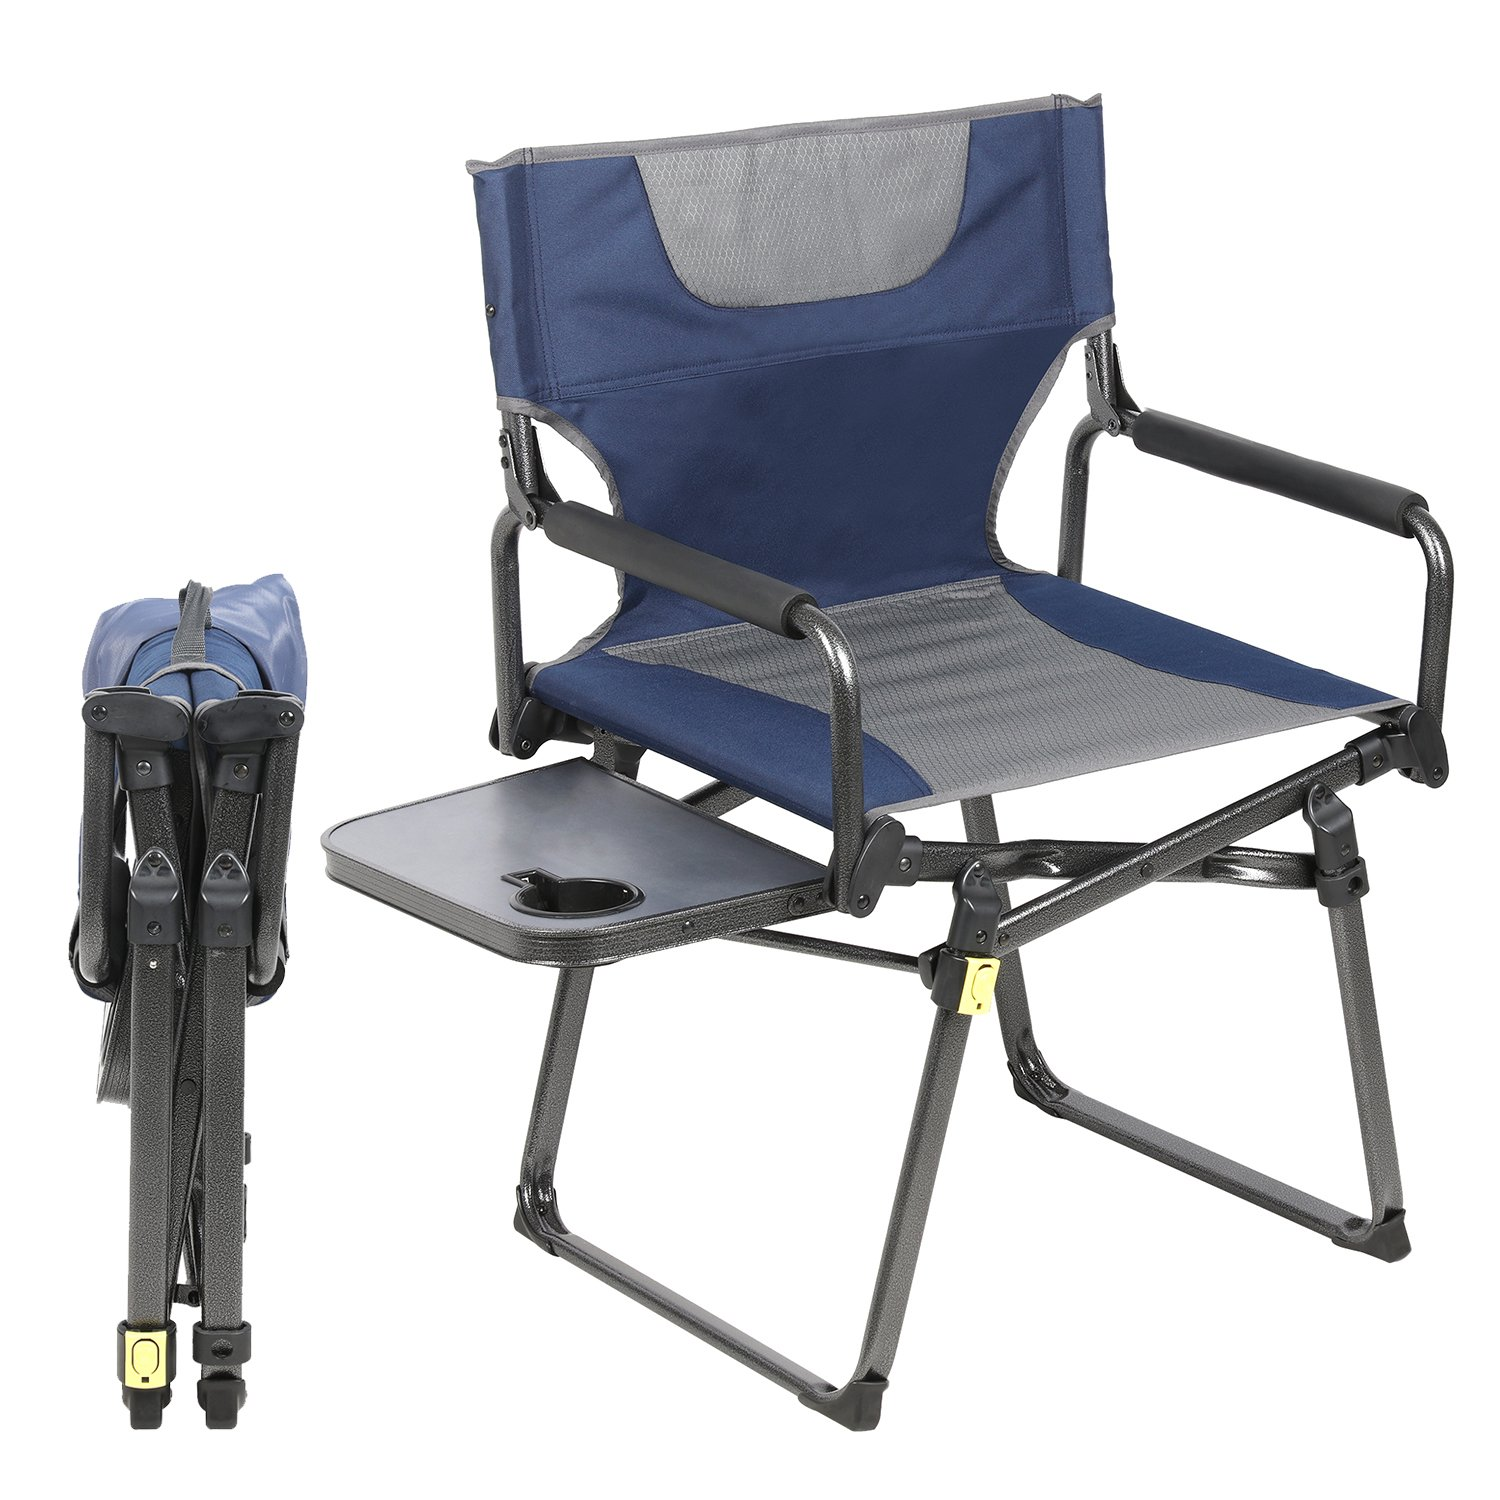 PORTAL Compact Camp Folding Director's Chair with Locking System and Carry Straps, Supports 300 lbs